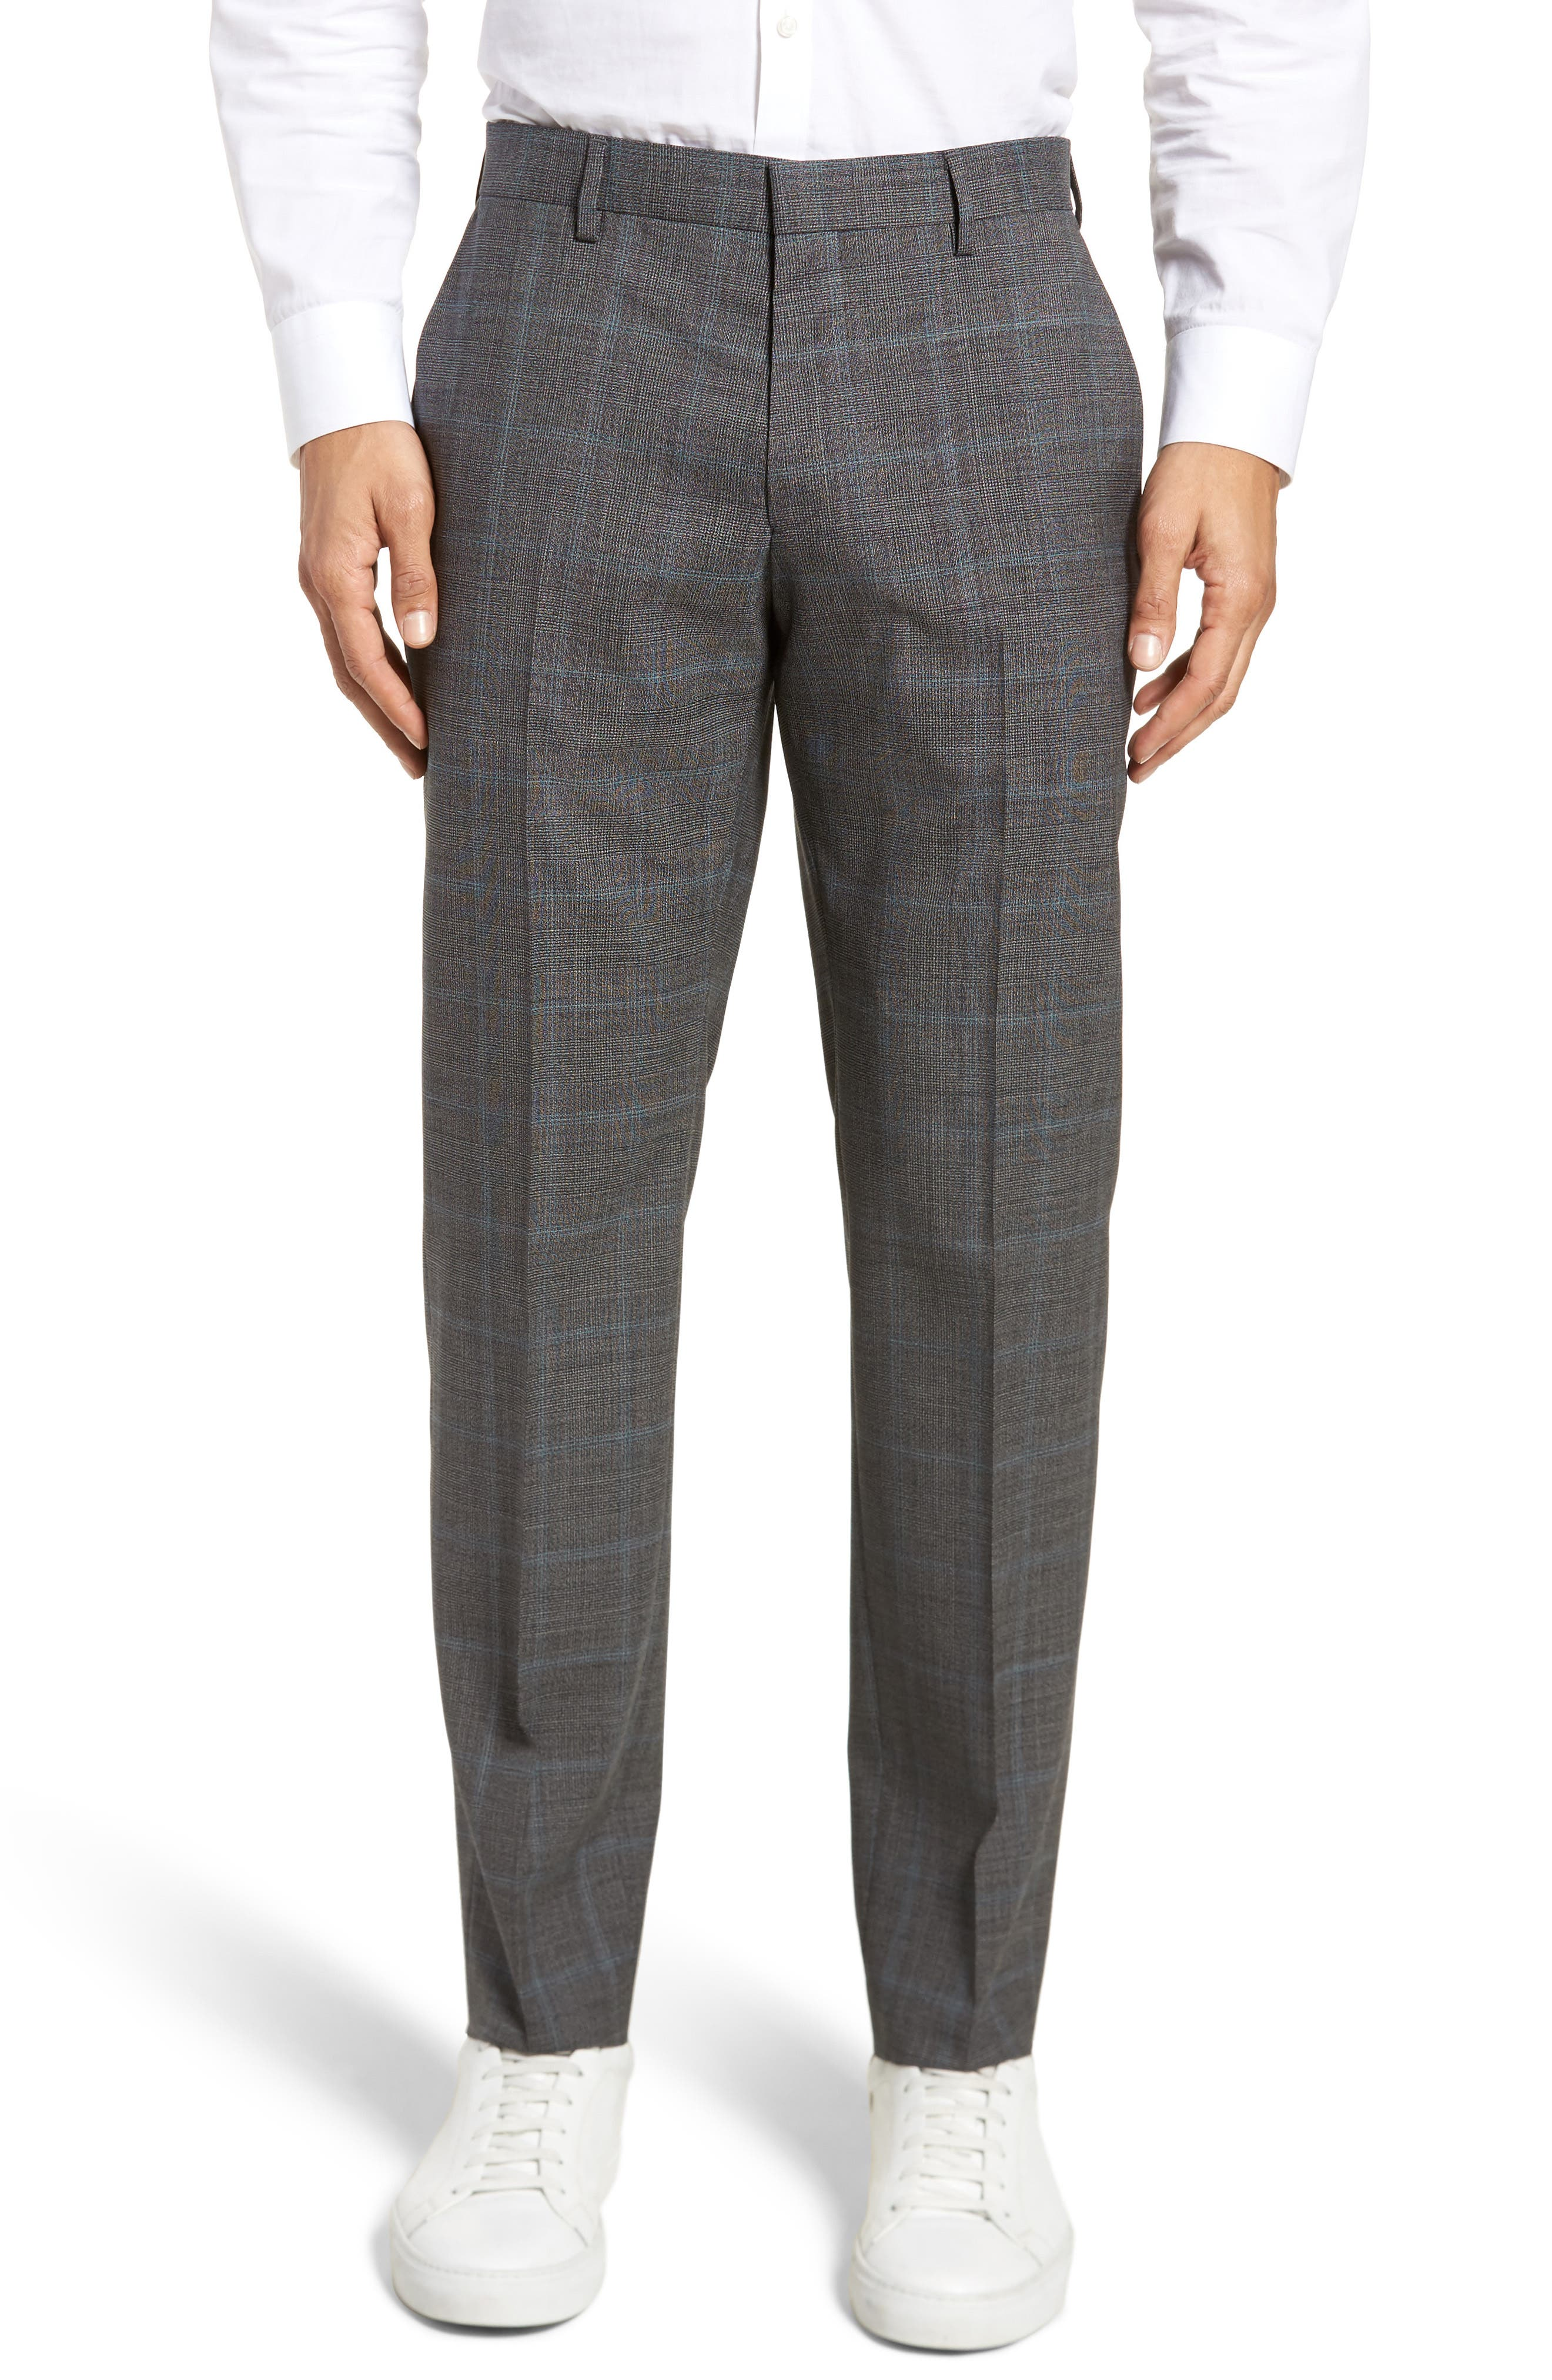 Genesis Flat Front Plaid Wool Trousers,                         Main,                         color, Open Grey